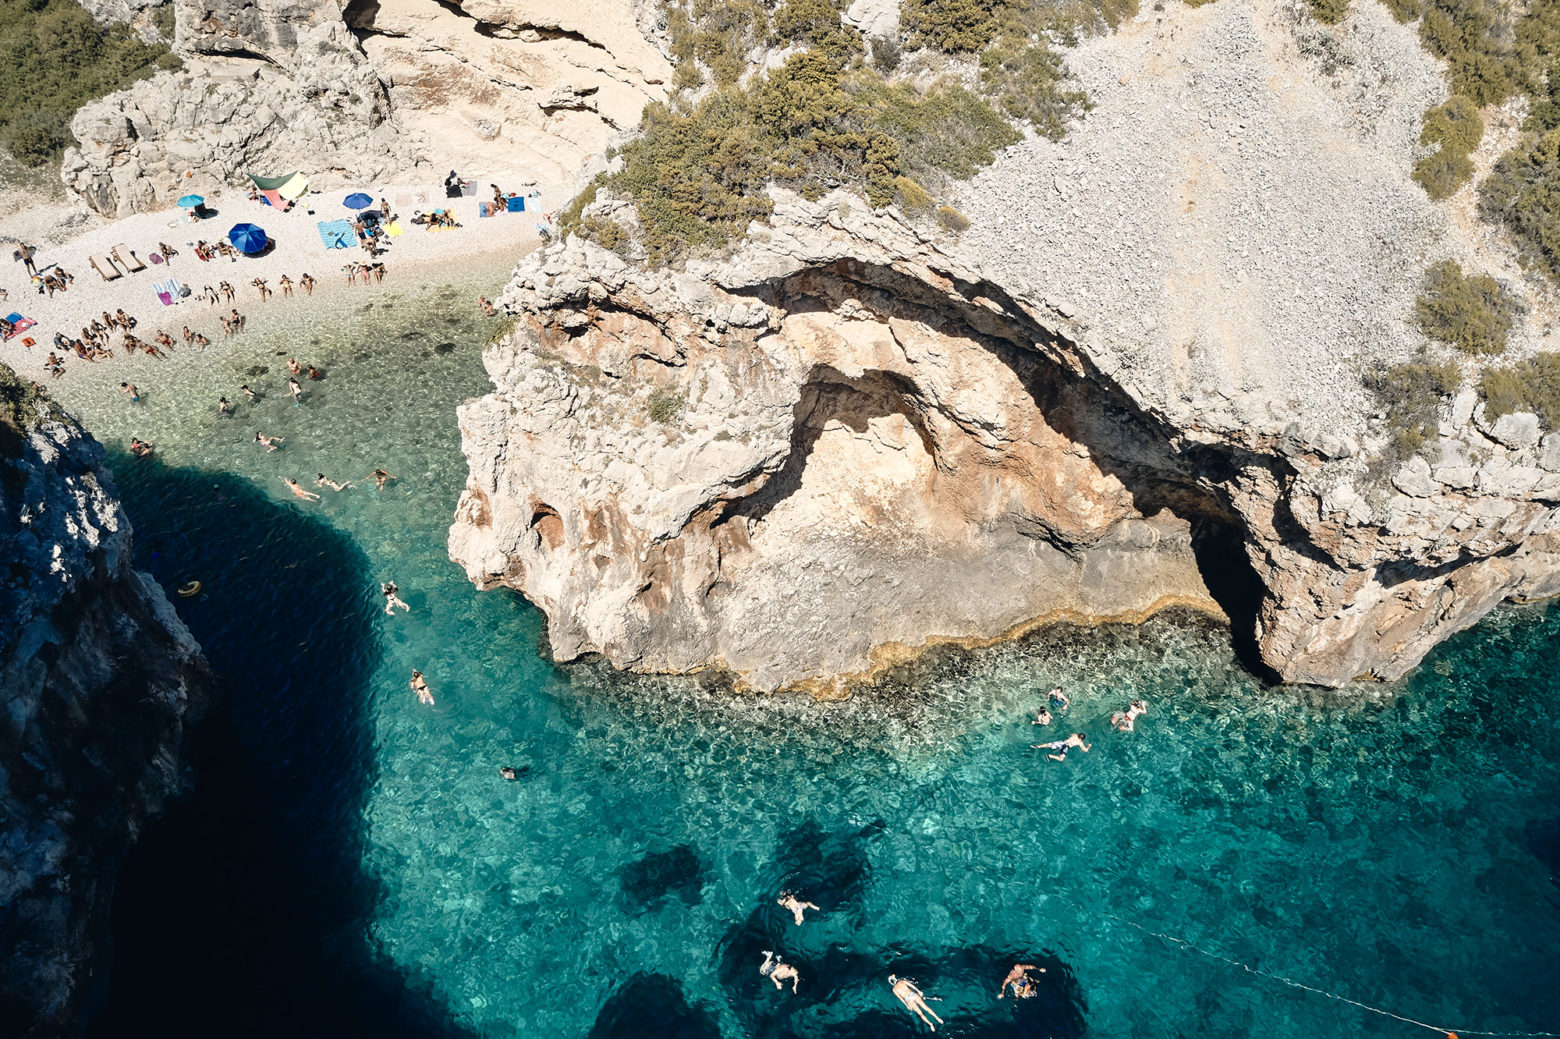 Stevinia beach from above